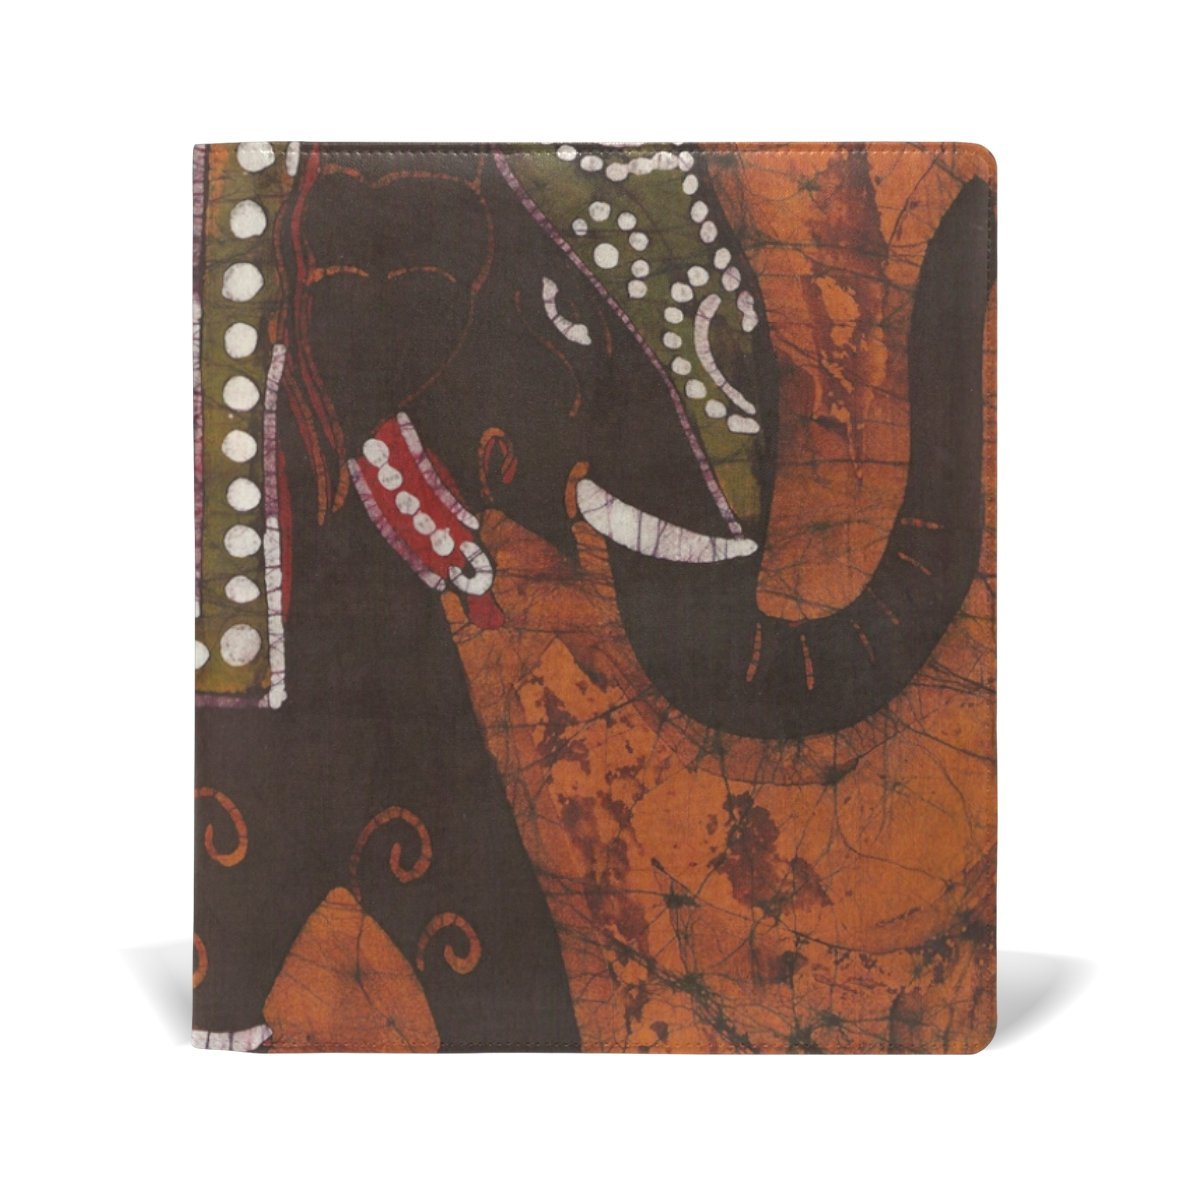 Sunlome Indian Decorated Elephant Pattern Stretchable PU Leather Book Cover 9 x 11 Inches Fits for School Hardcover Textbooks